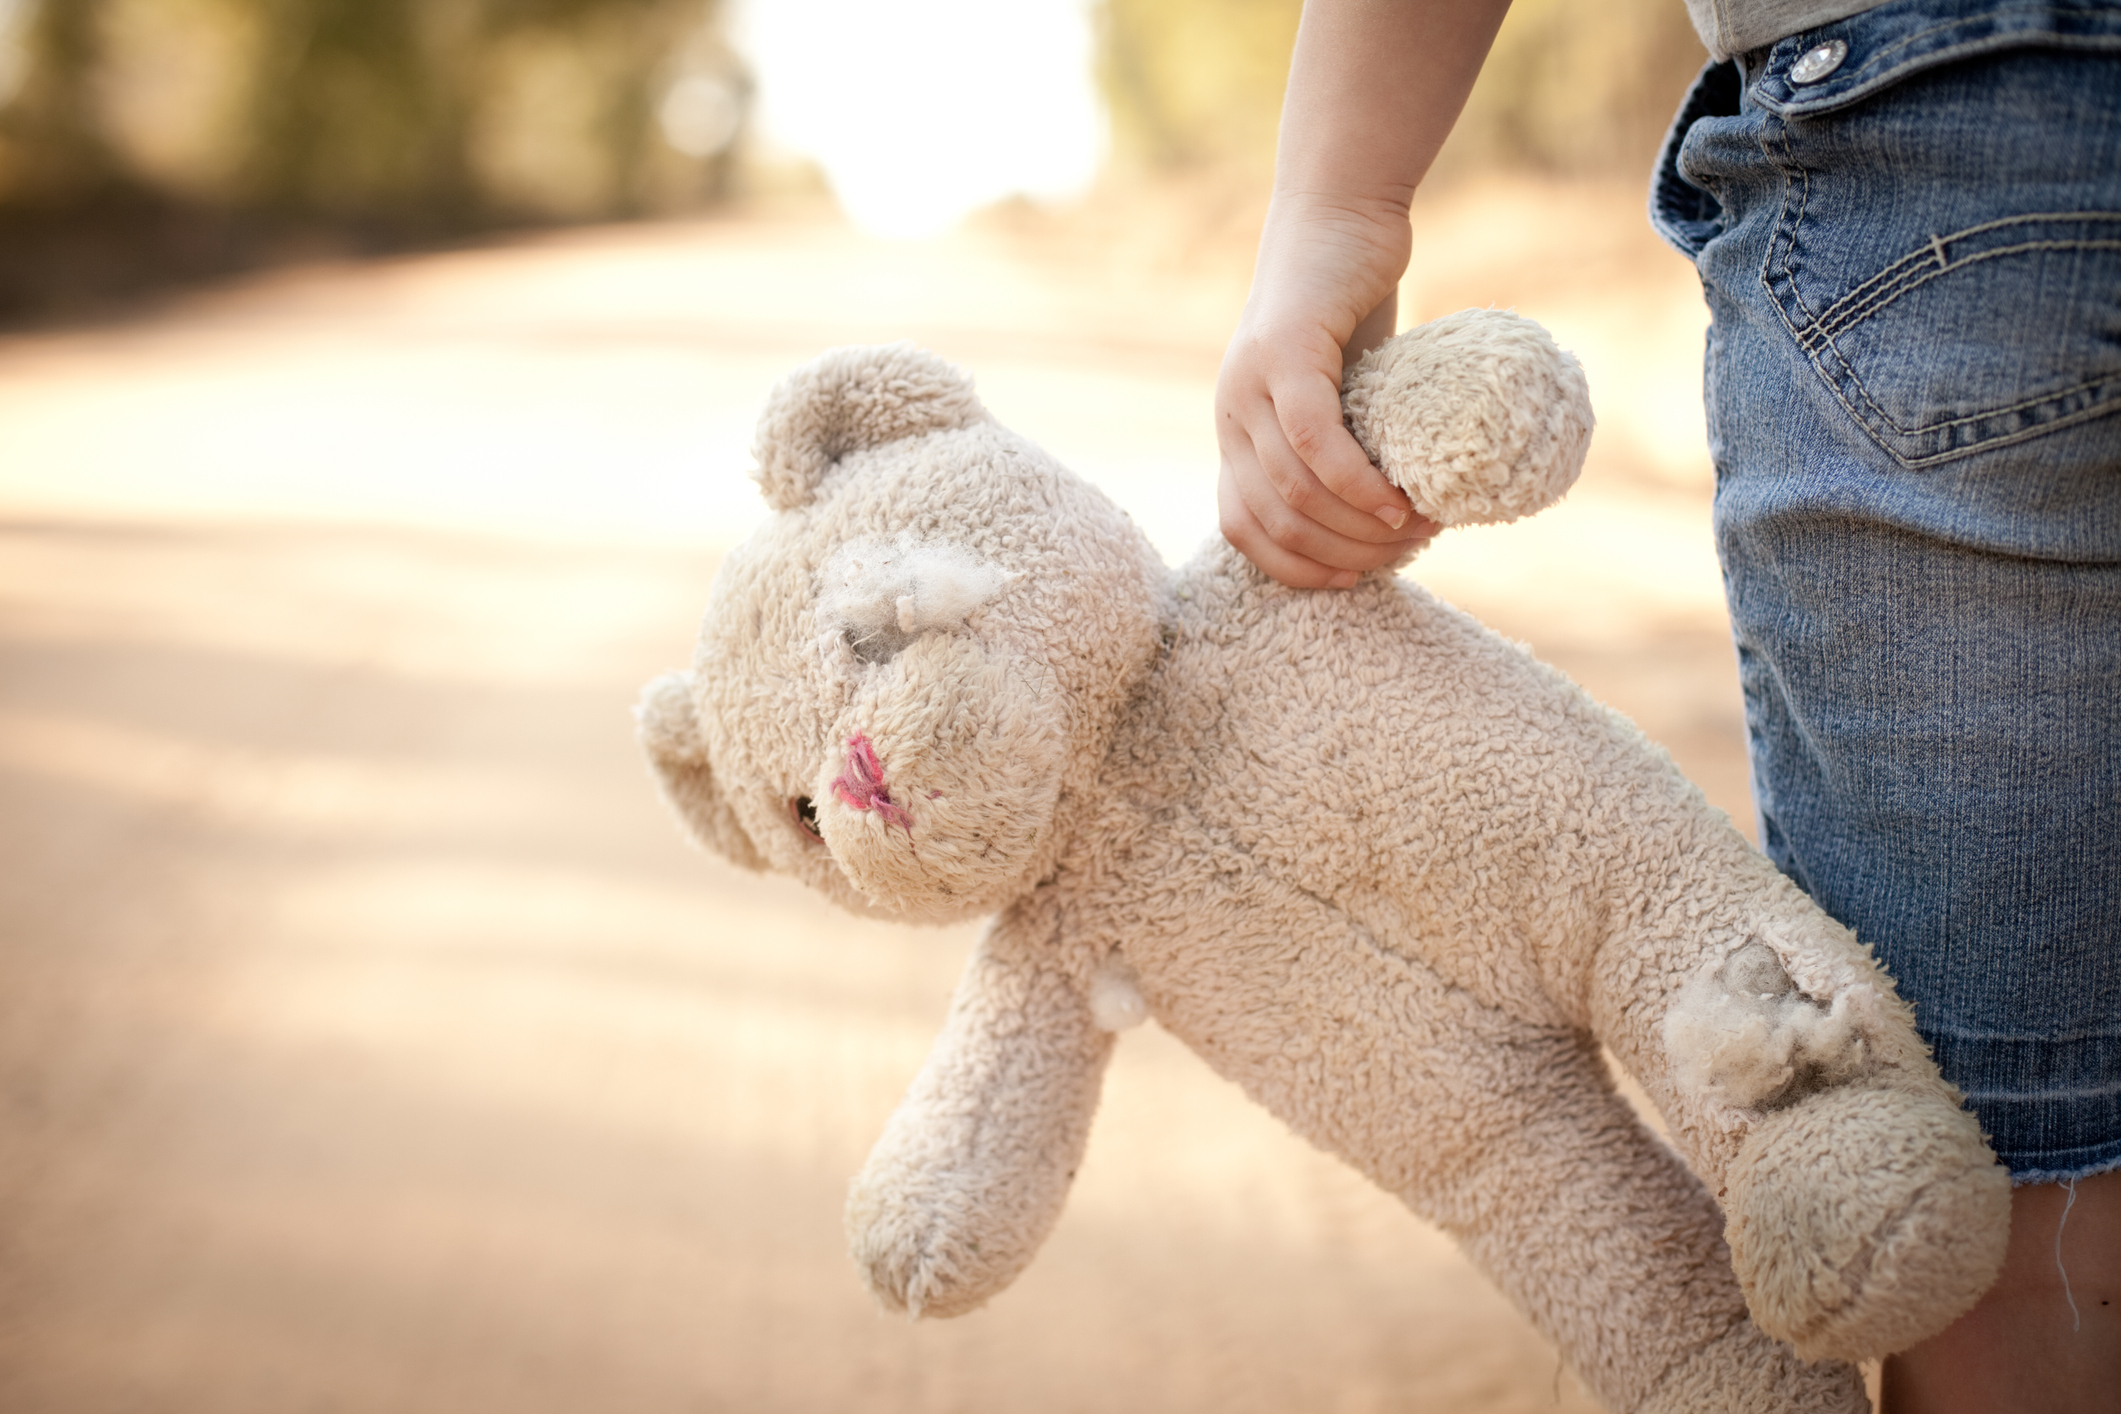 photo of child holding tattered teddy bear